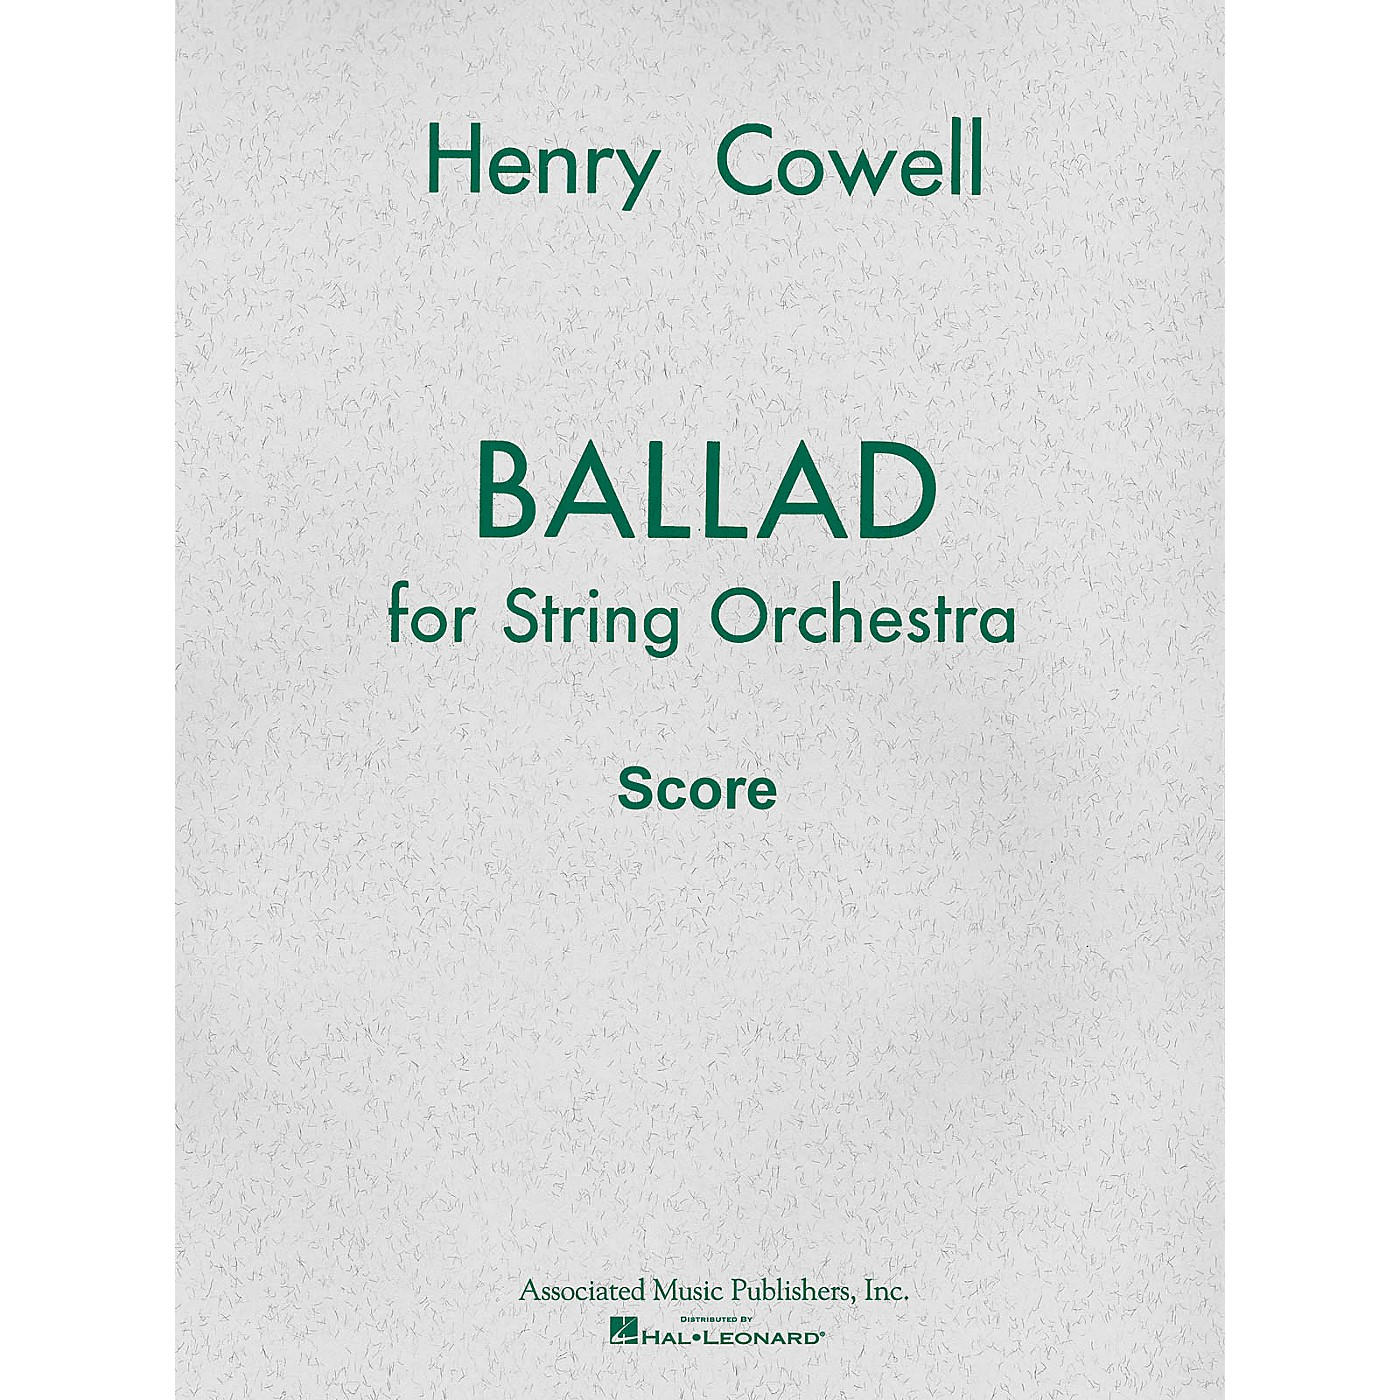 Associated Ballad (1954) for String Orchestra (Full Score) Study Score Series Composed by Henry Cowell thumbnail